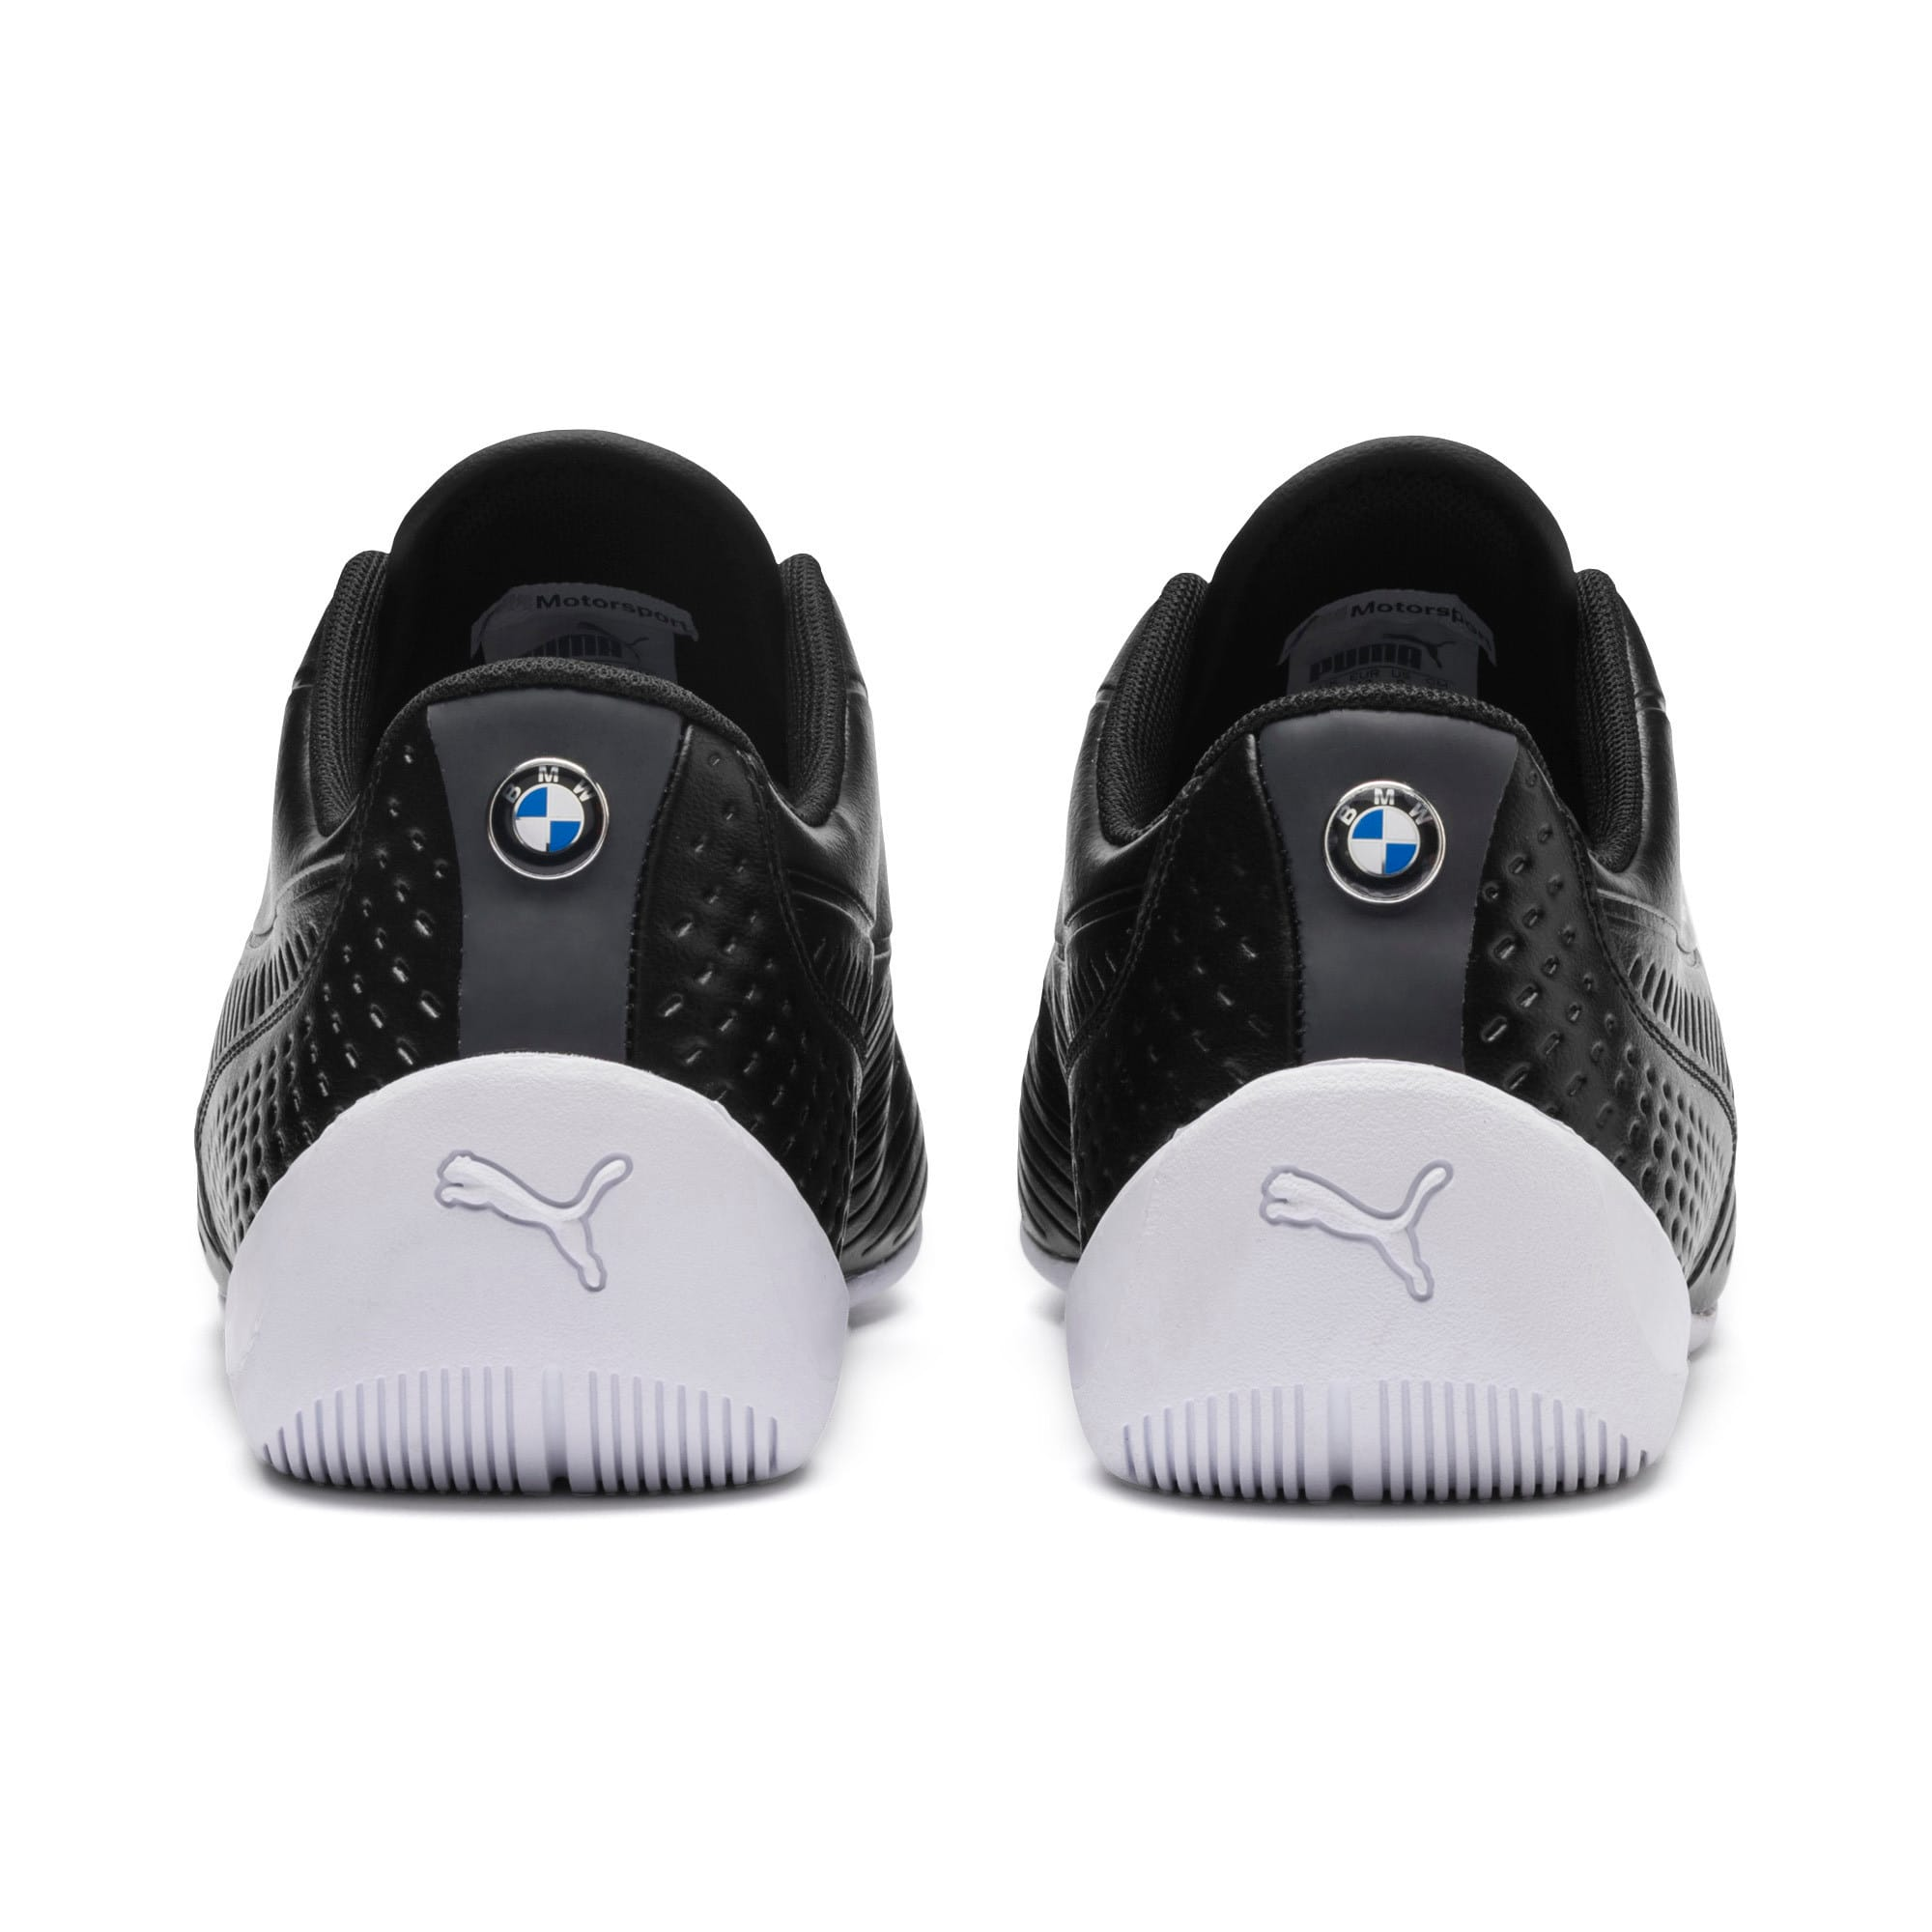 Thumbnail 4 of BMW M Motorsport Drift Cat 7S Ultra Shoes, Puma Black-Puma Black, medium